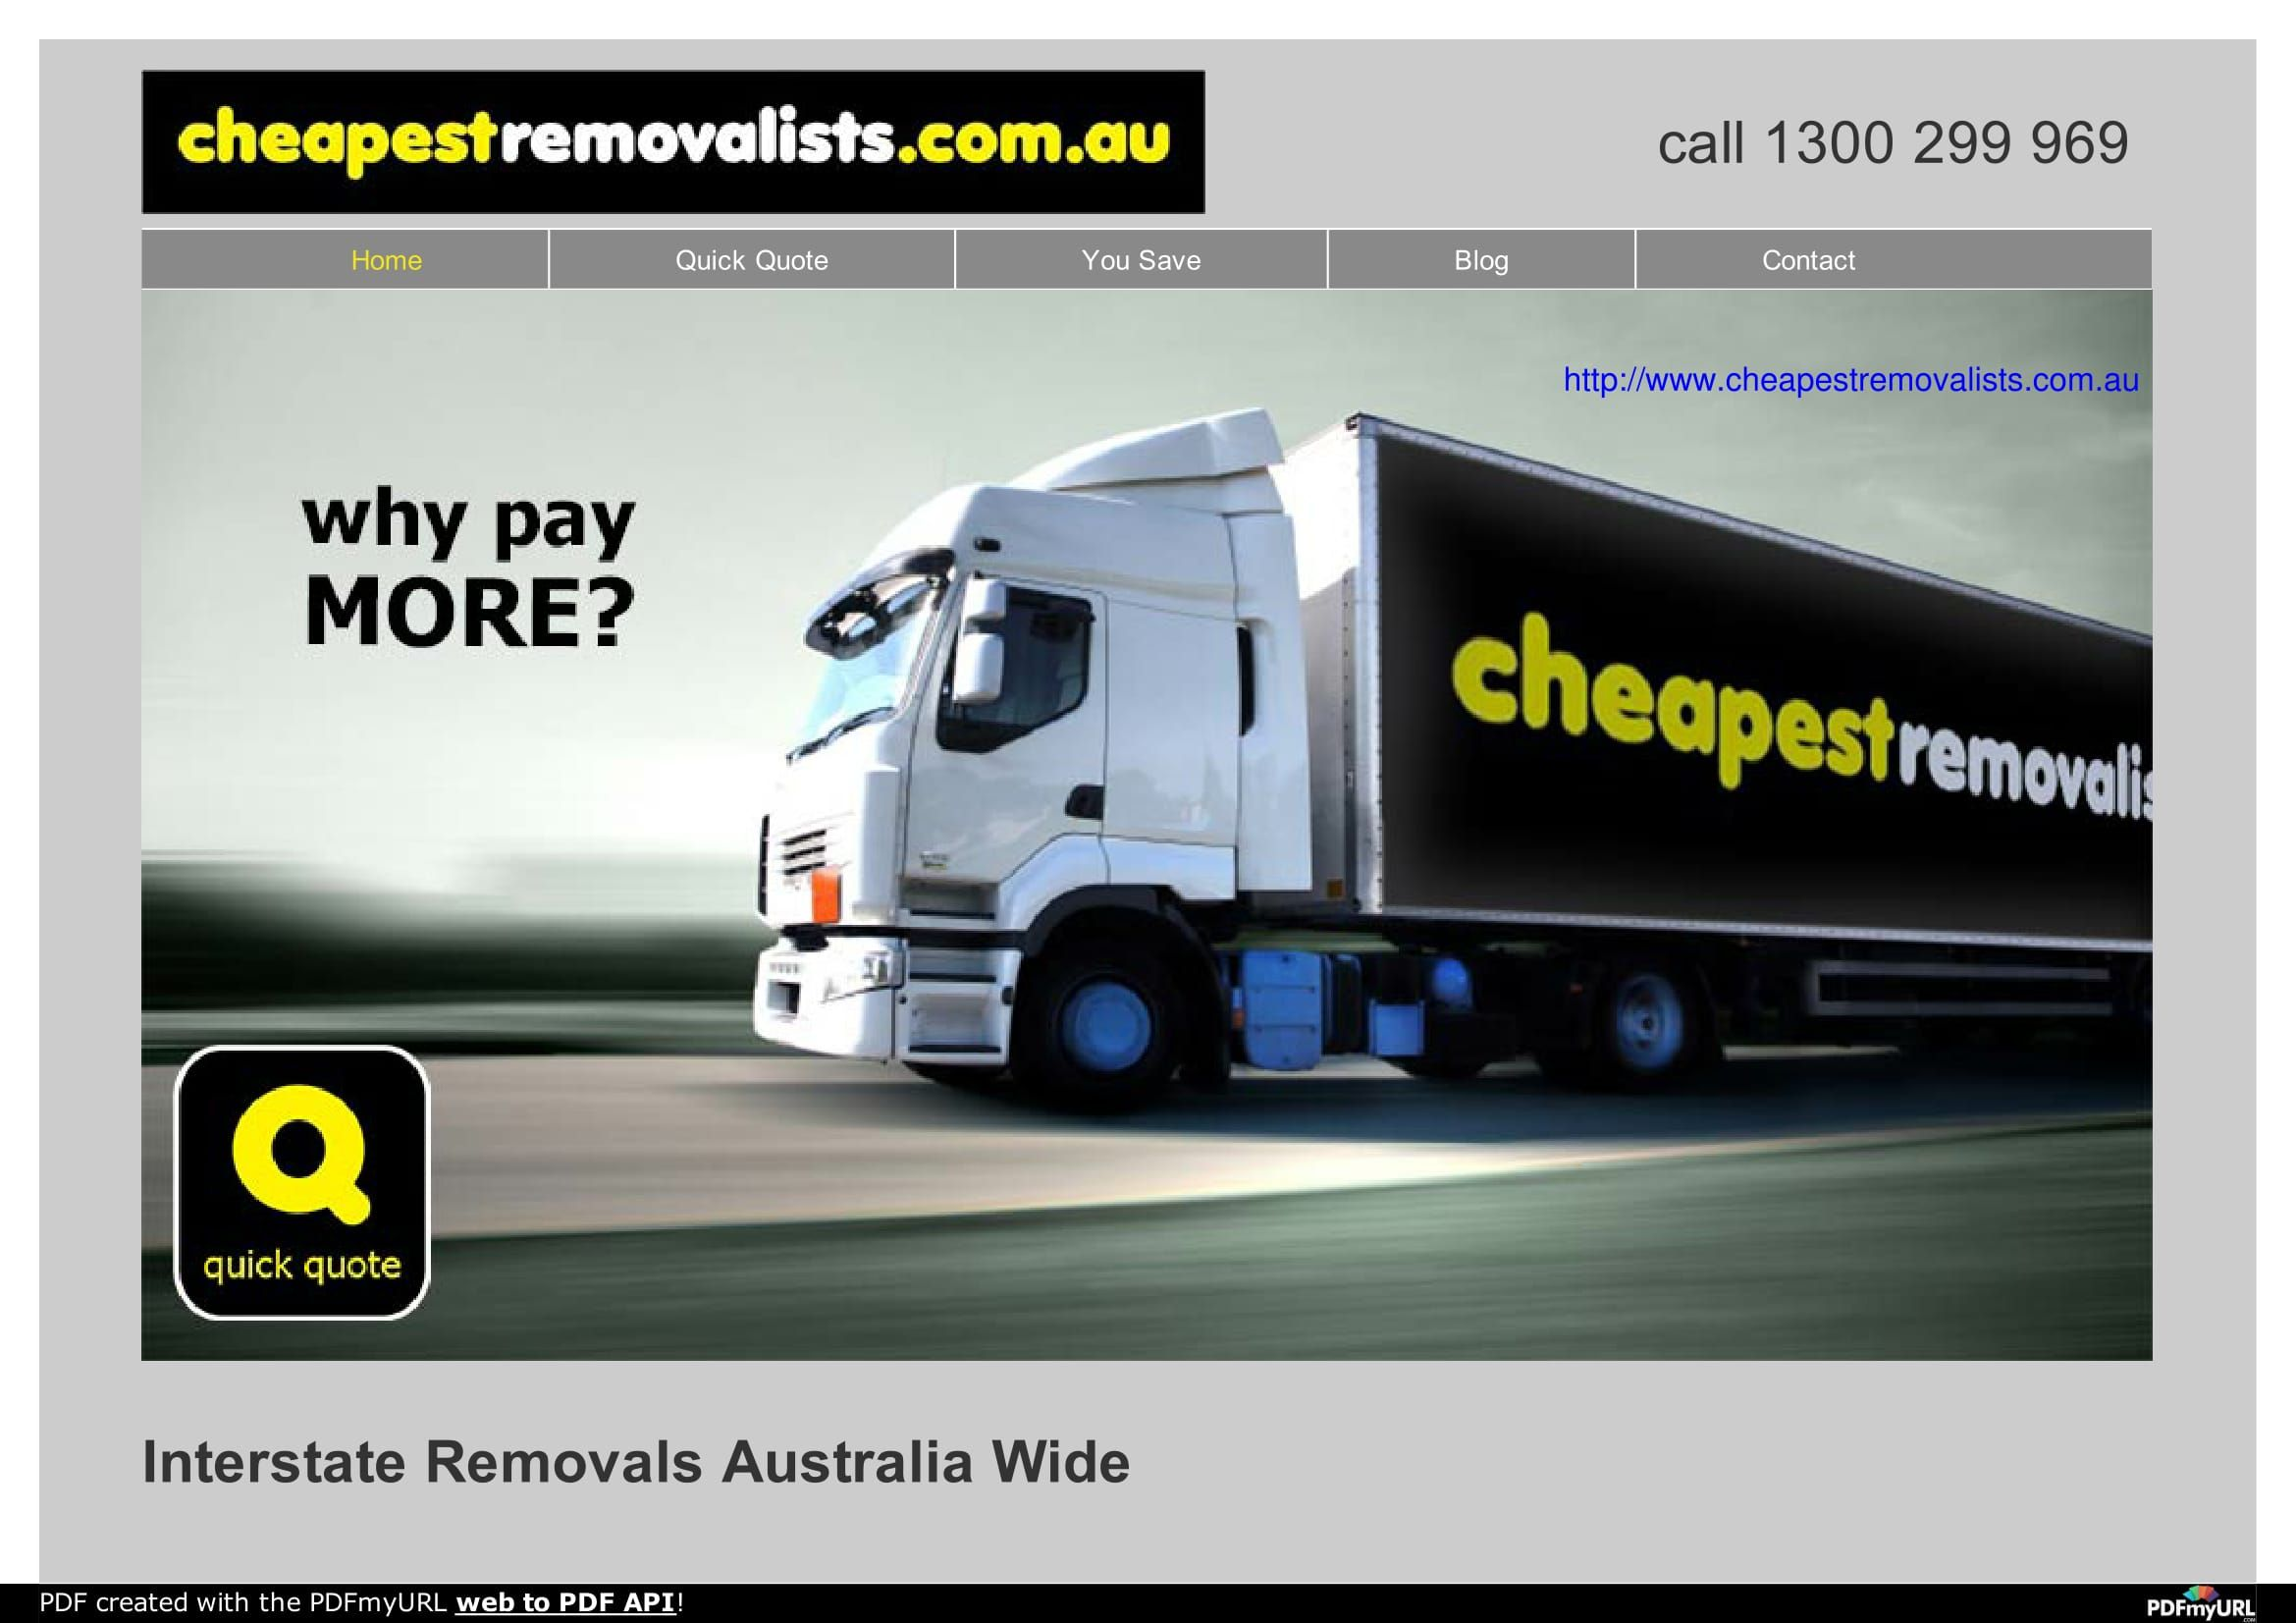 Image by jacob on as Removalist, Cheap furniture website